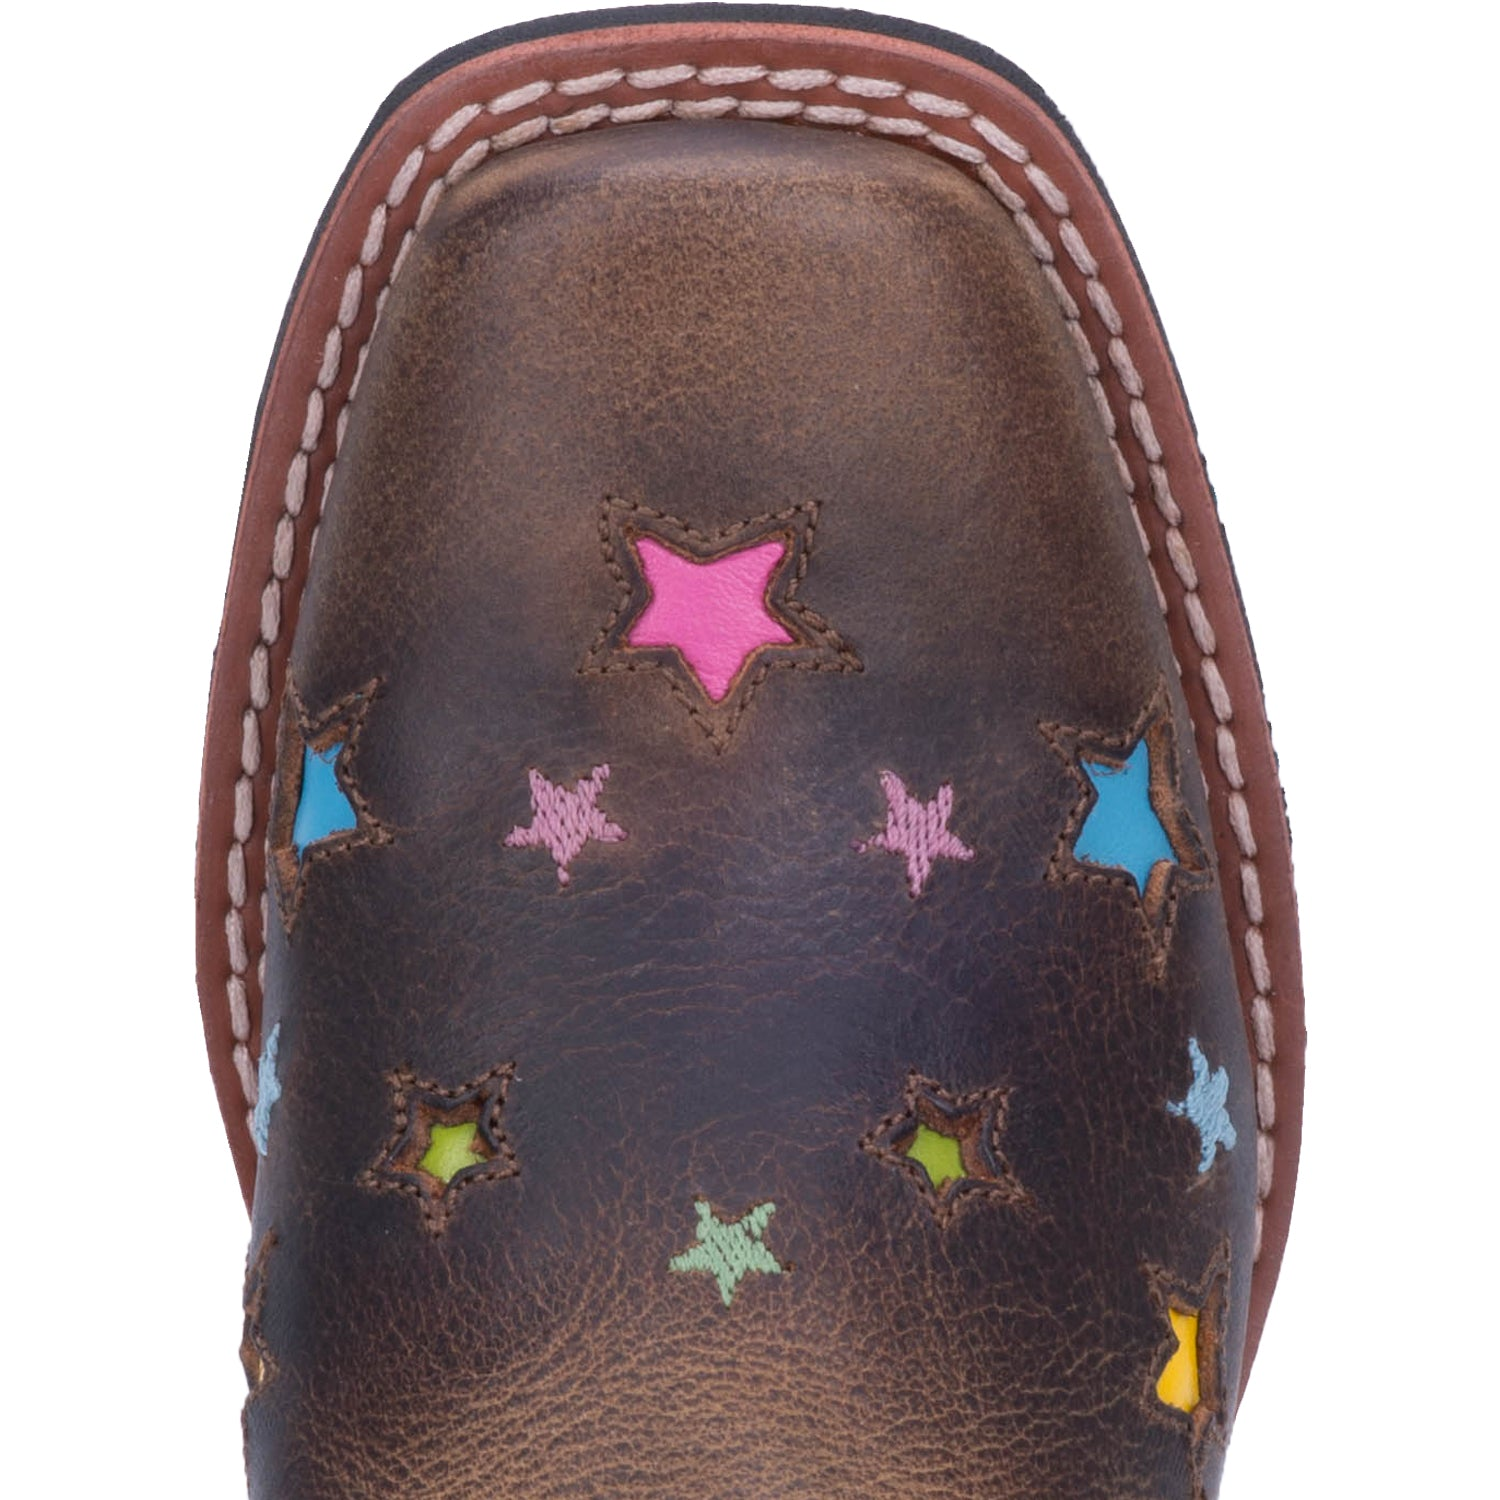 STARLETT LEATHER YOUTH BOOT 4197207932970